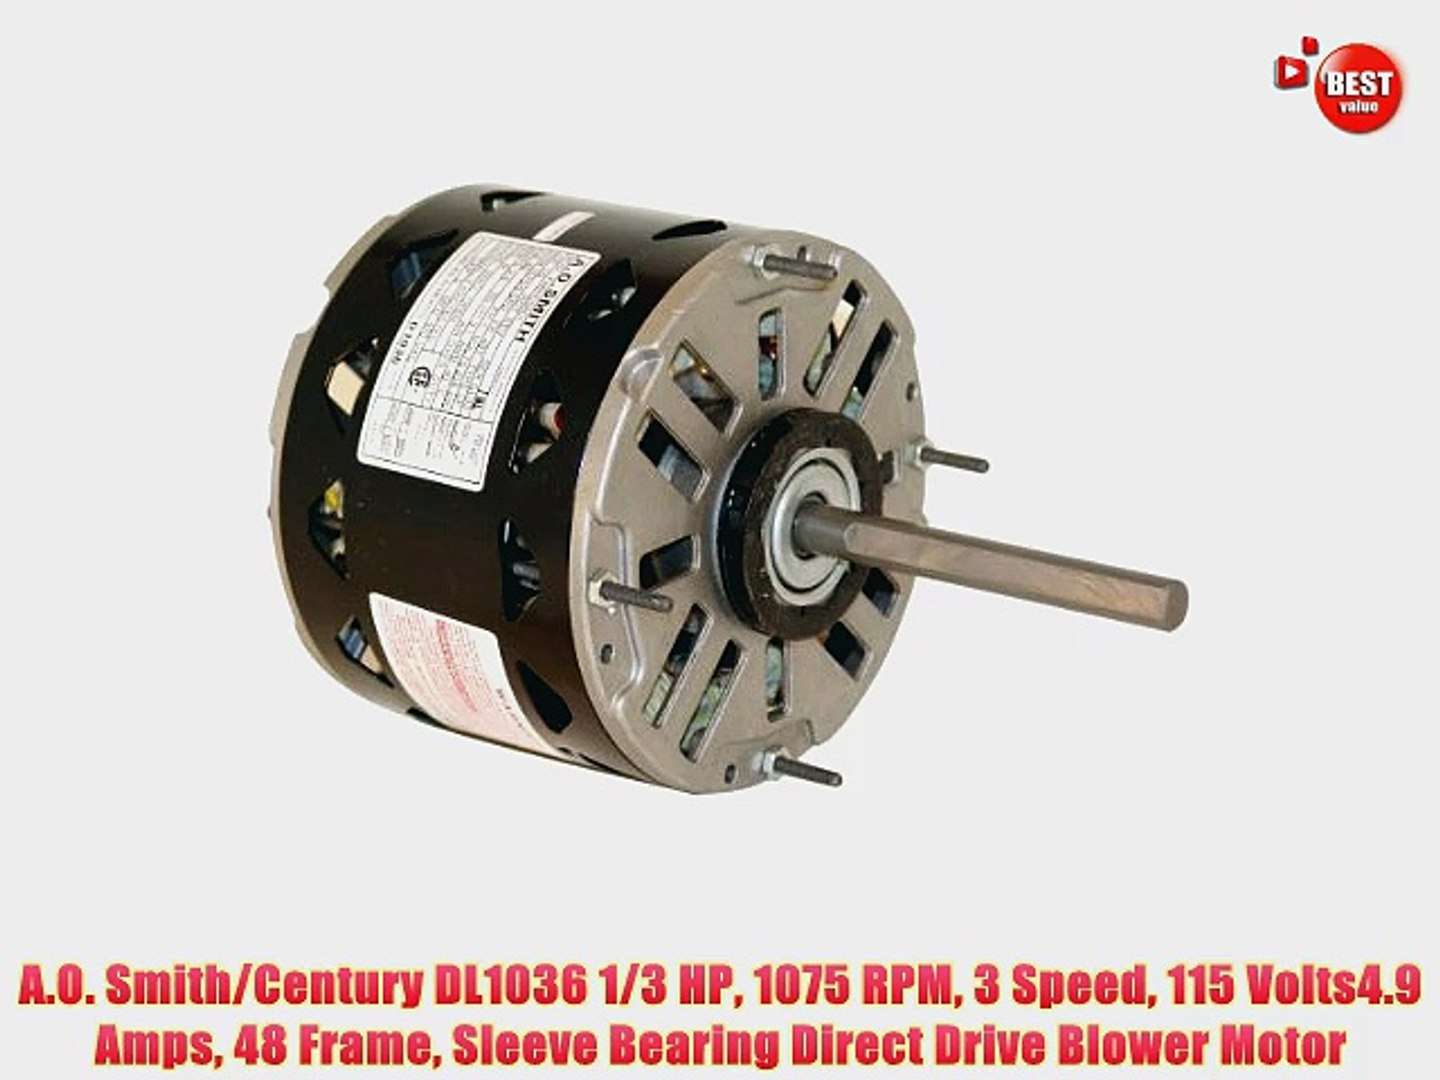 A.O. Smith/Century DL1036 1/3 HP 1075 RPM 3 Sd 115 Volts4.9 Amps 48 on